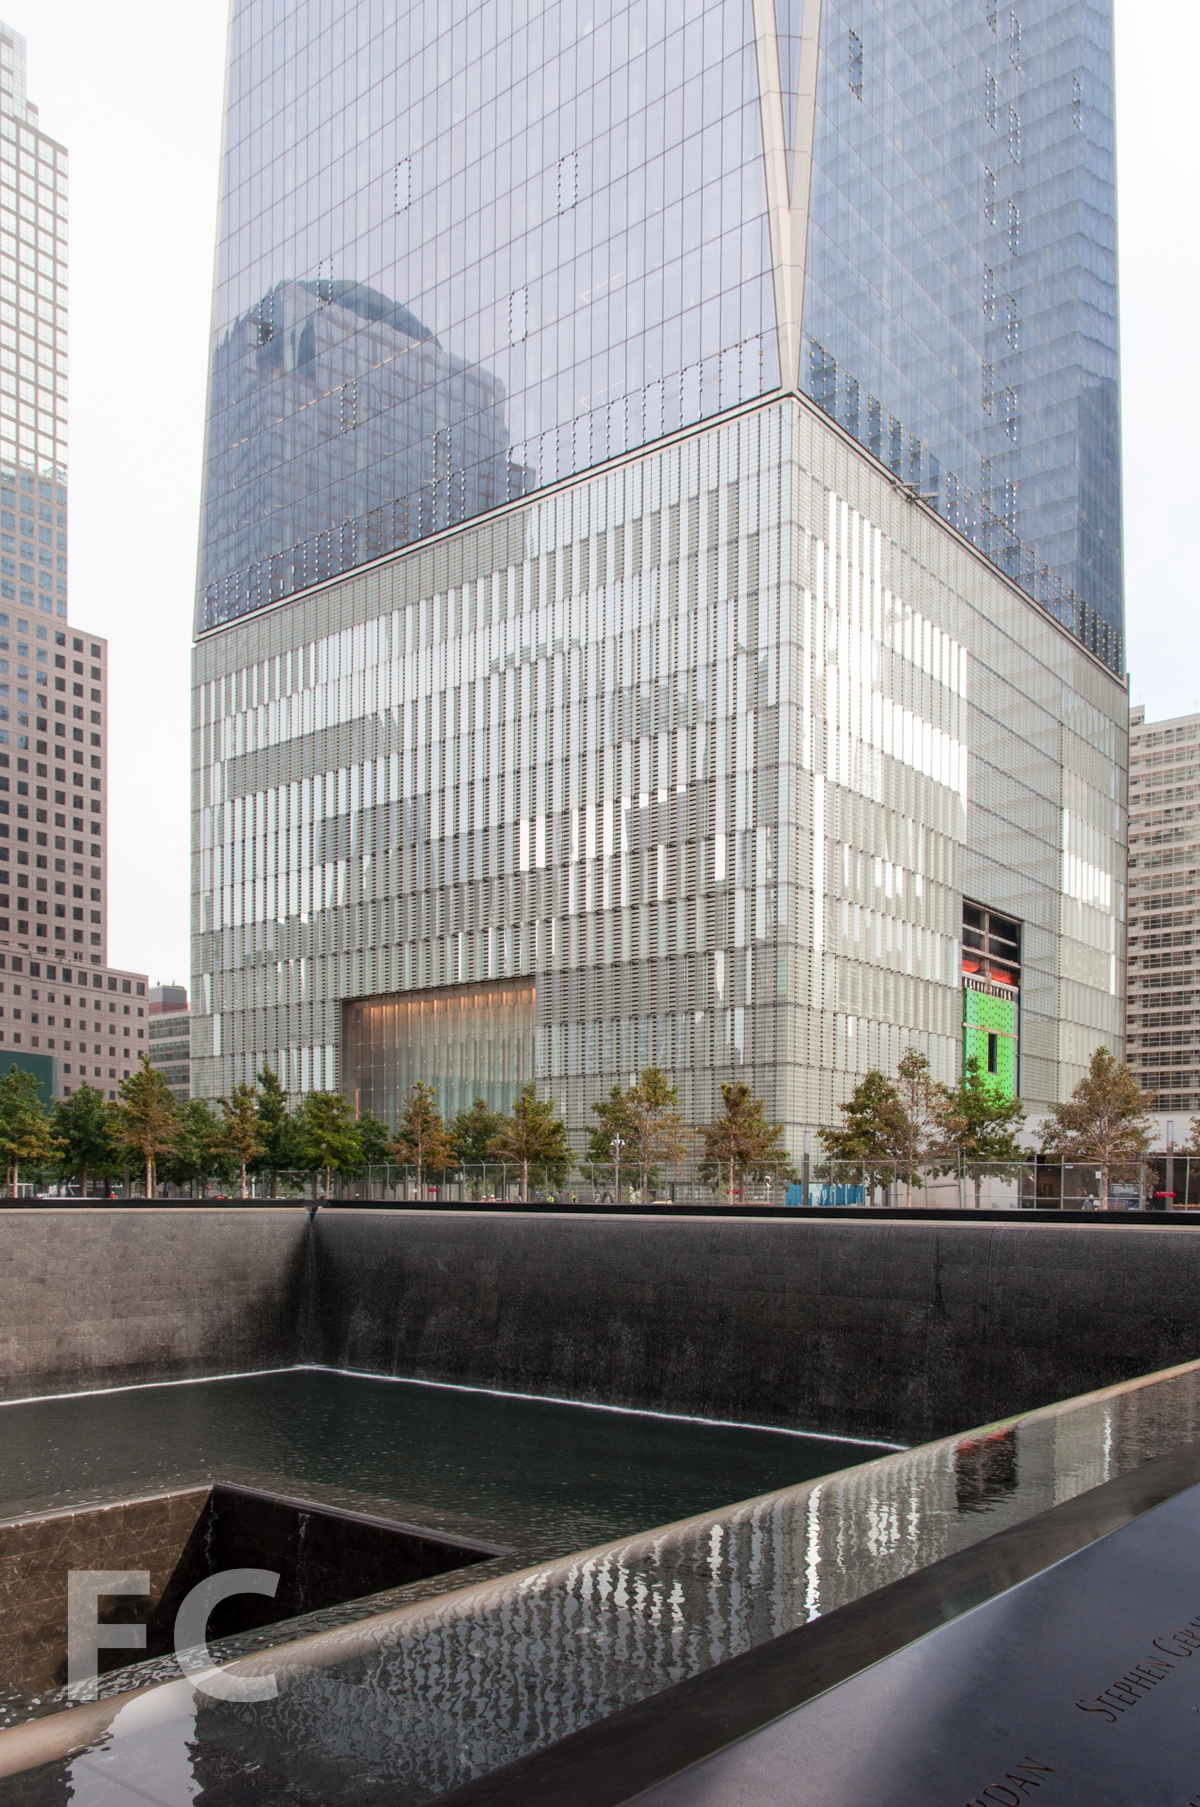 The podium and lower floors of 1 WTC from the memorial pools.